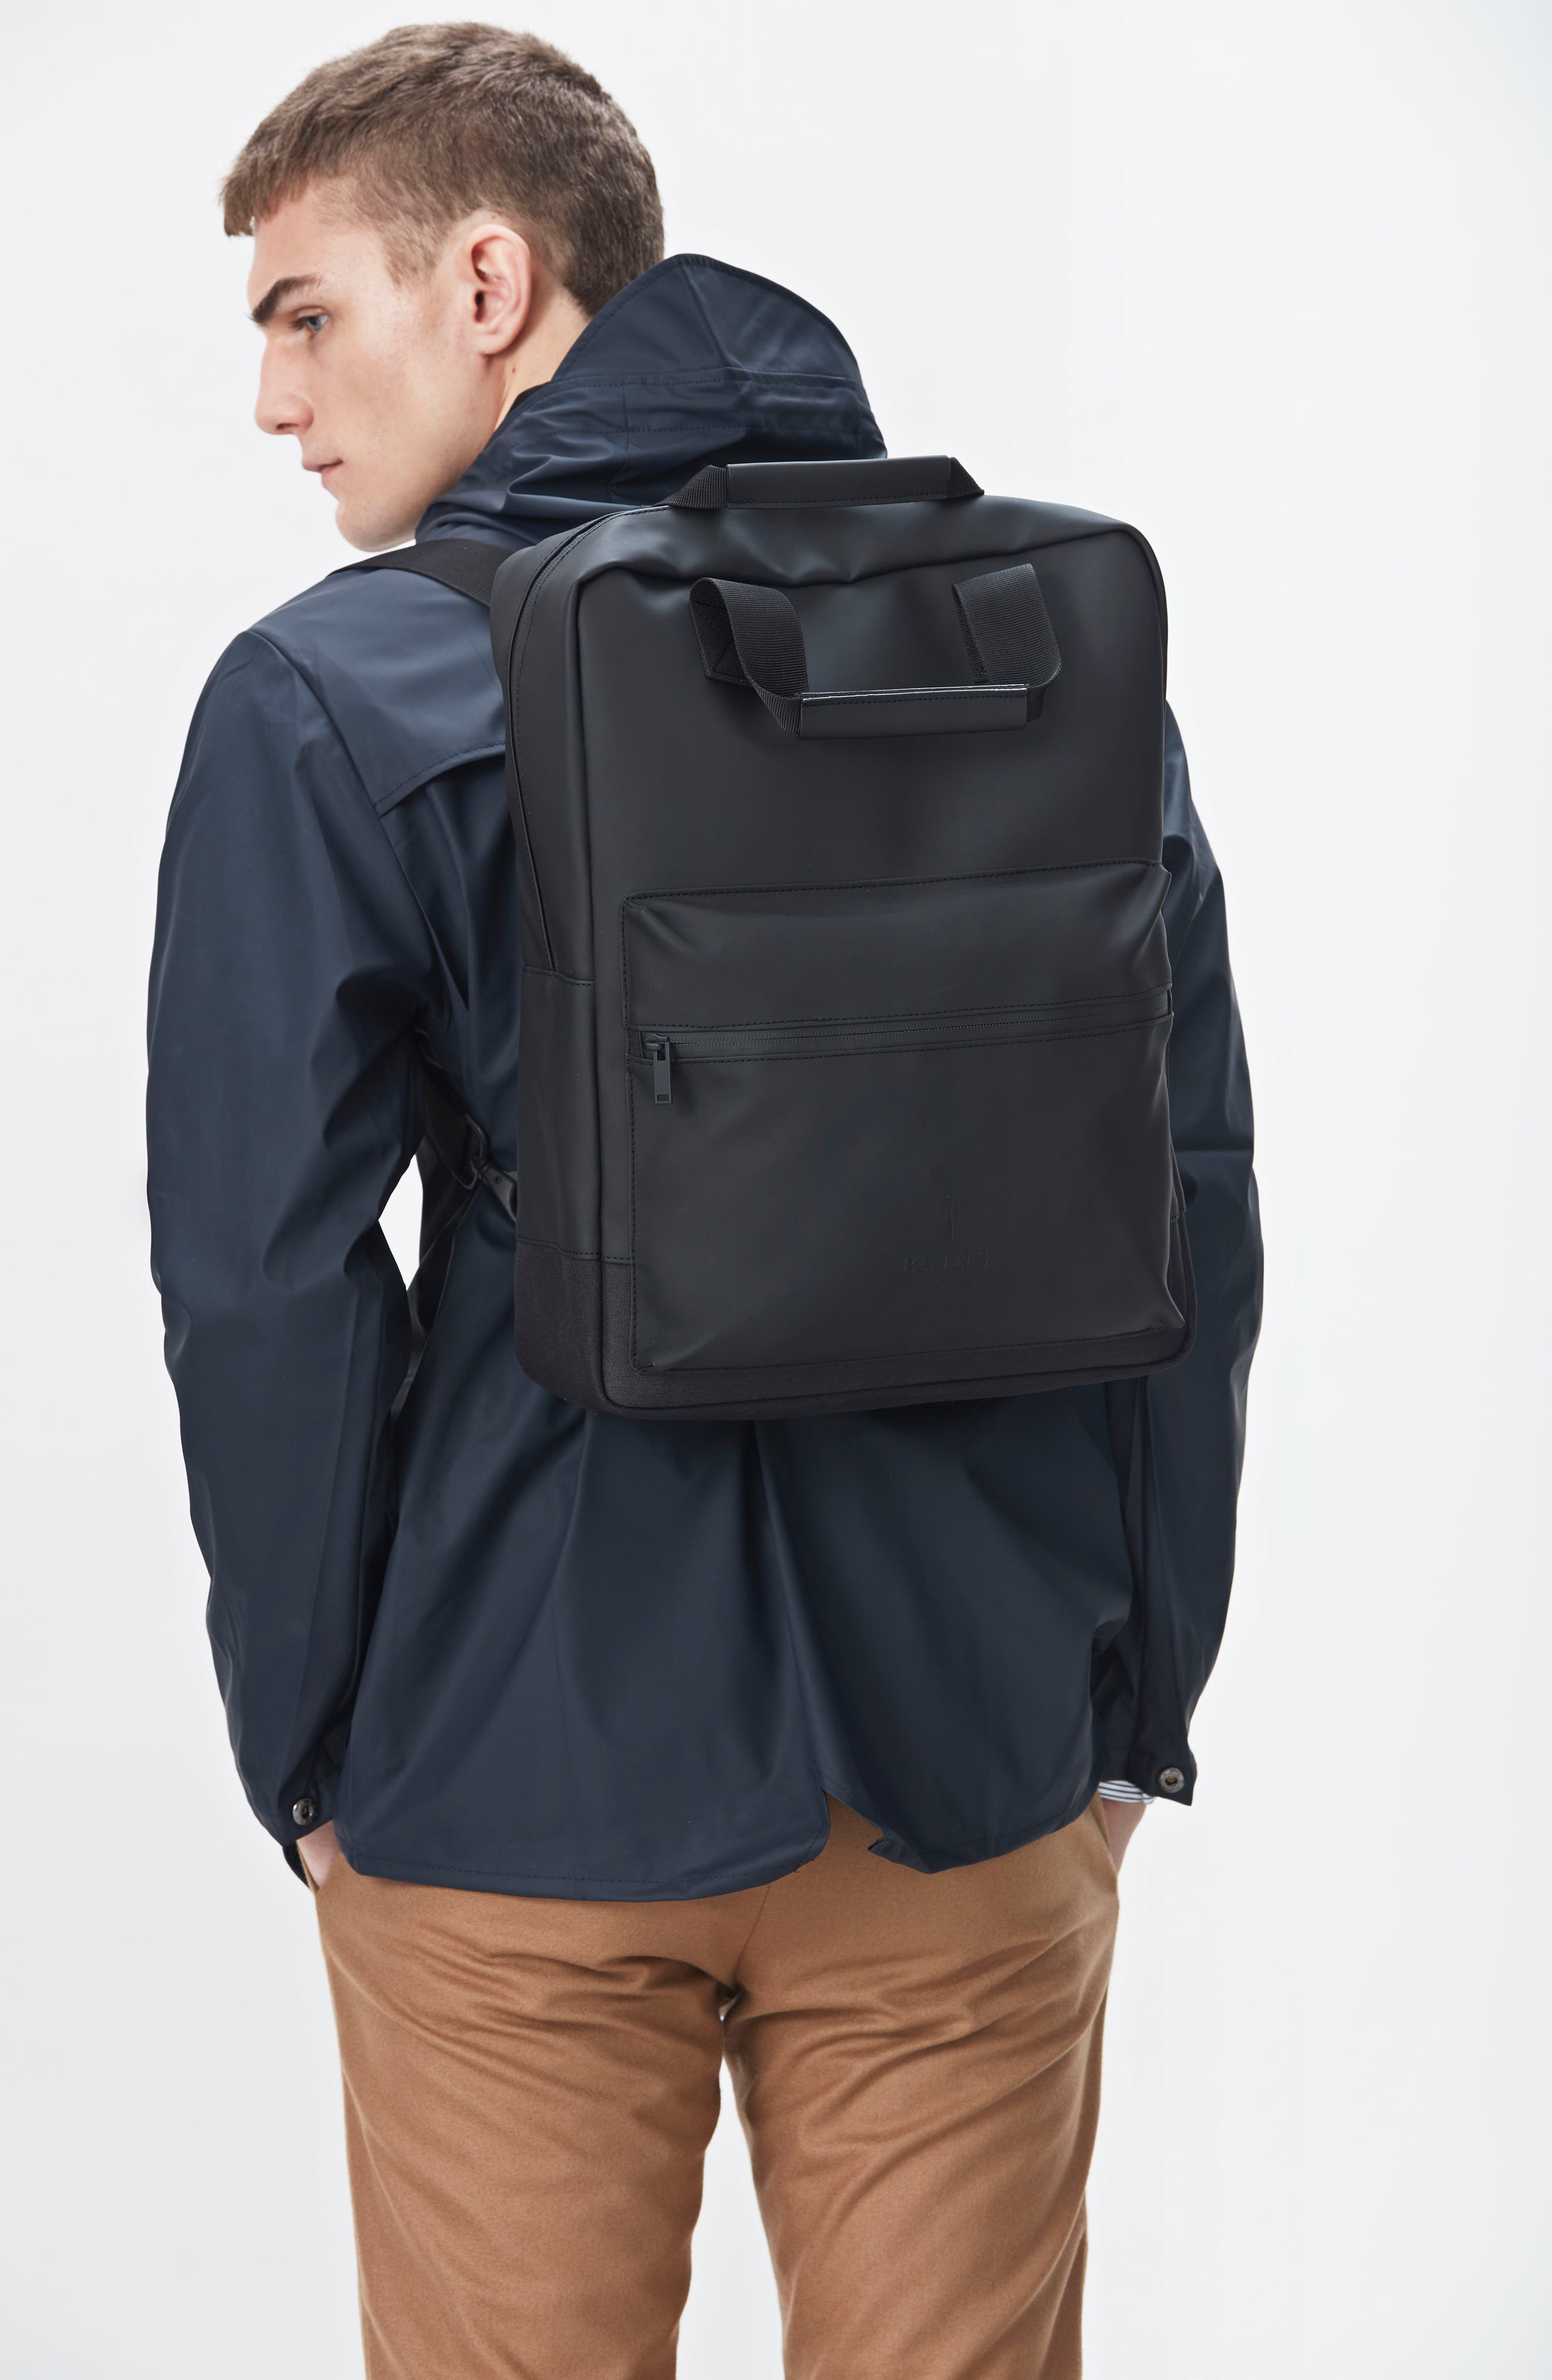 Scout Backpack,                             Alternate thumbnail 7, color,                             BLACK